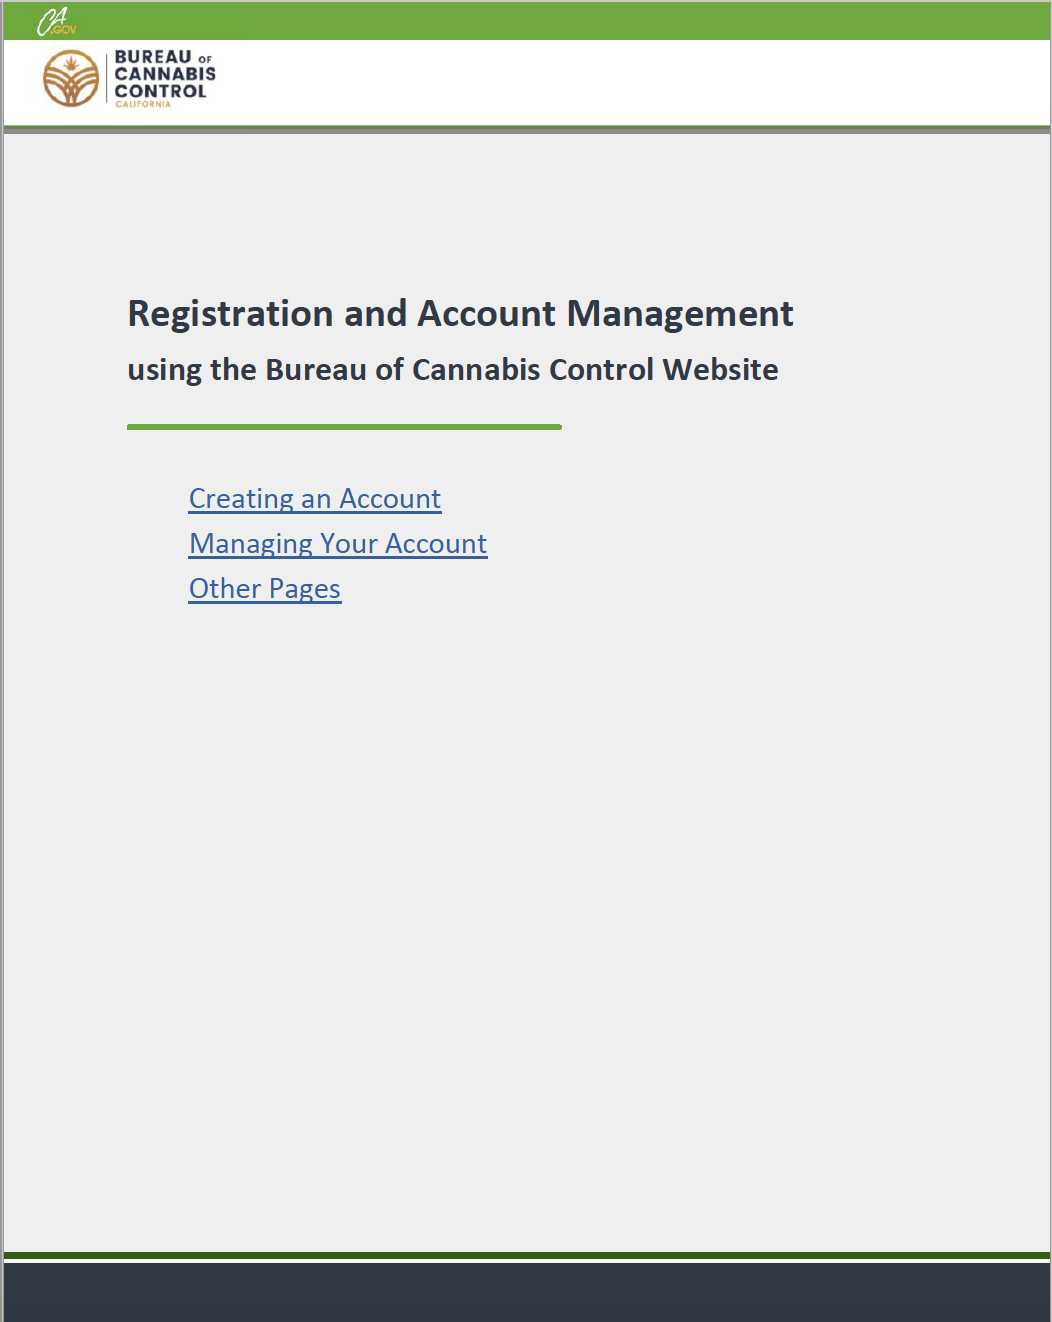 Registration and Account Management Reference.png